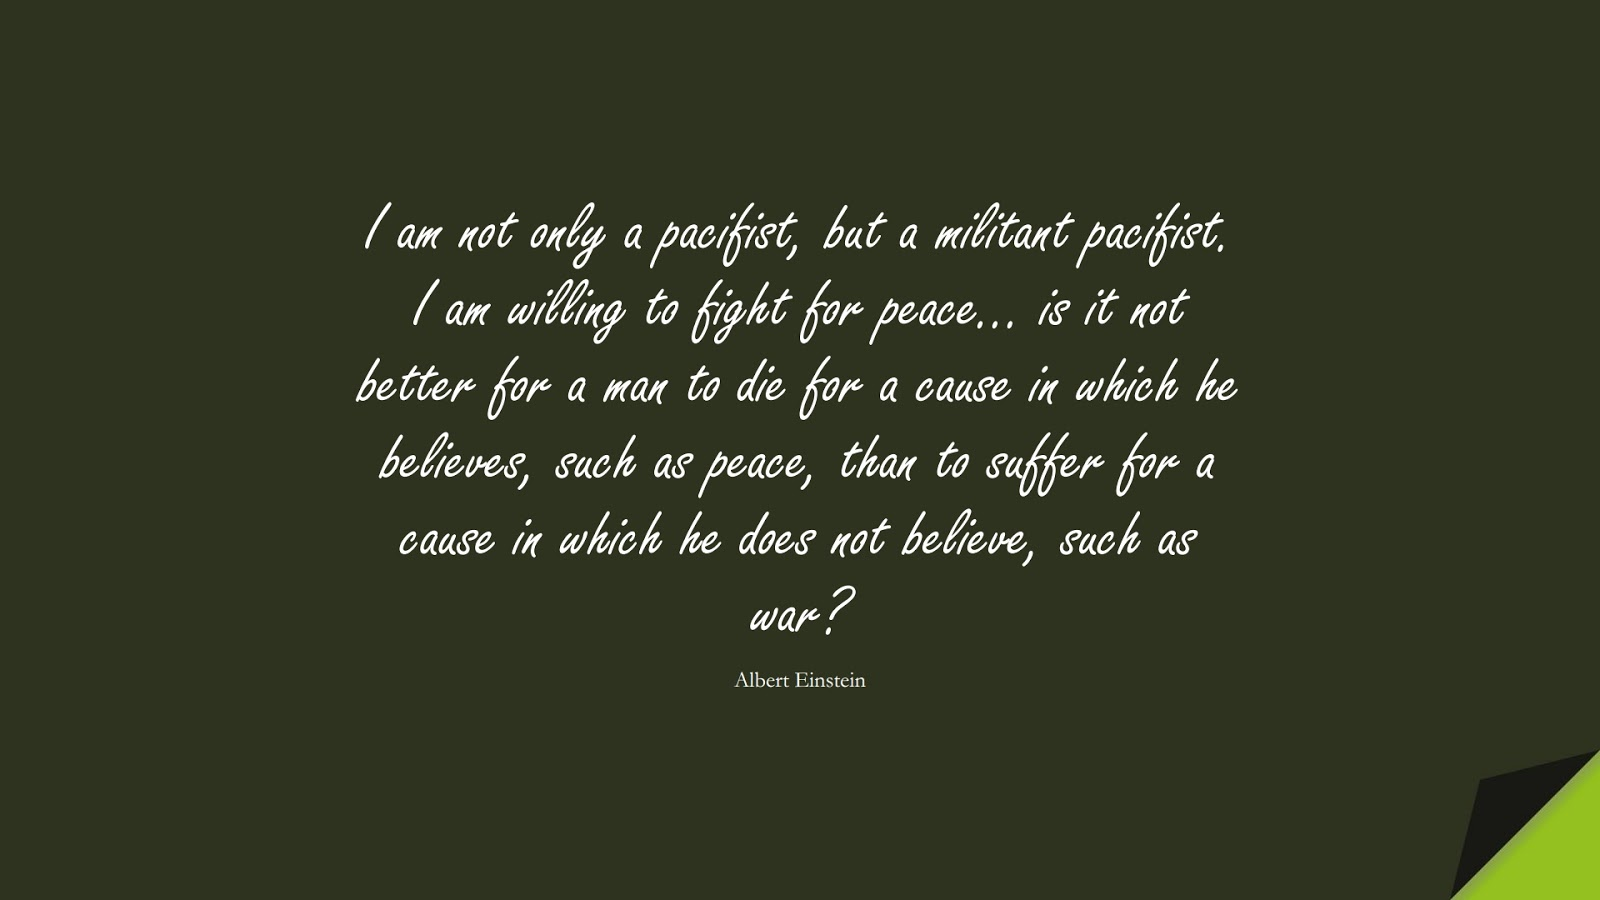 I am not only a pacifist, but a militant pacifist. I am willing to fight for peace… is it not better for a man to die for a cause in which he believes, such as peace, than to suffer for a cause in which he does not believe, such as war? (Albert Einstein);  #AlbertEnsteinQuotes